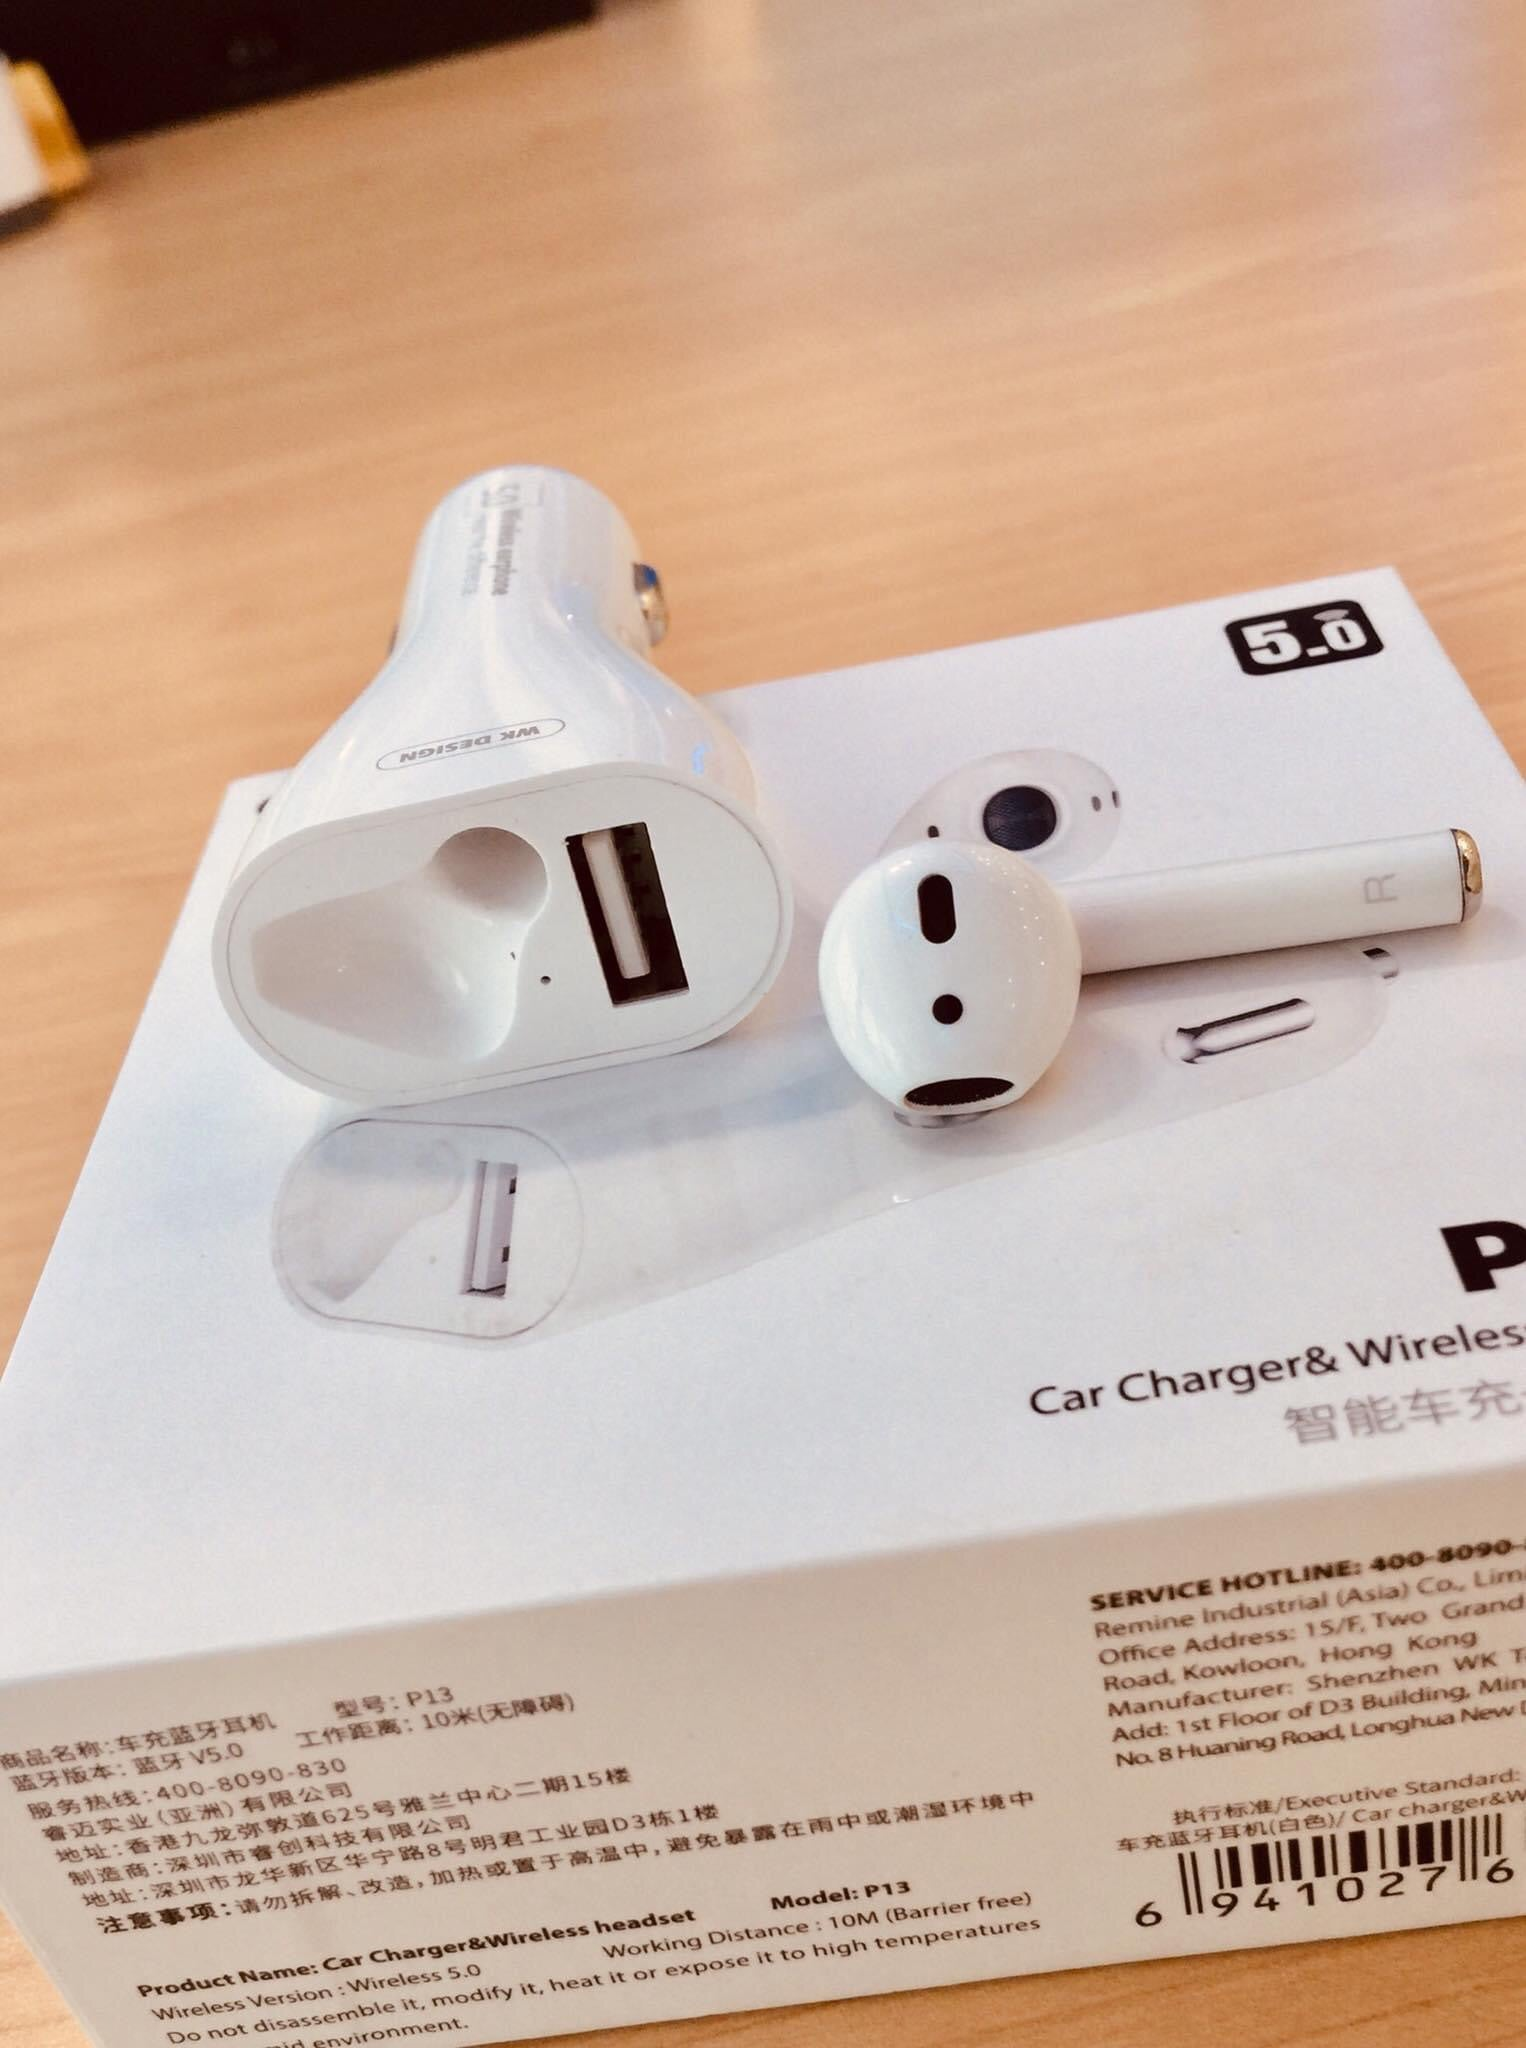 P13 Car Charger + Wireless Headset